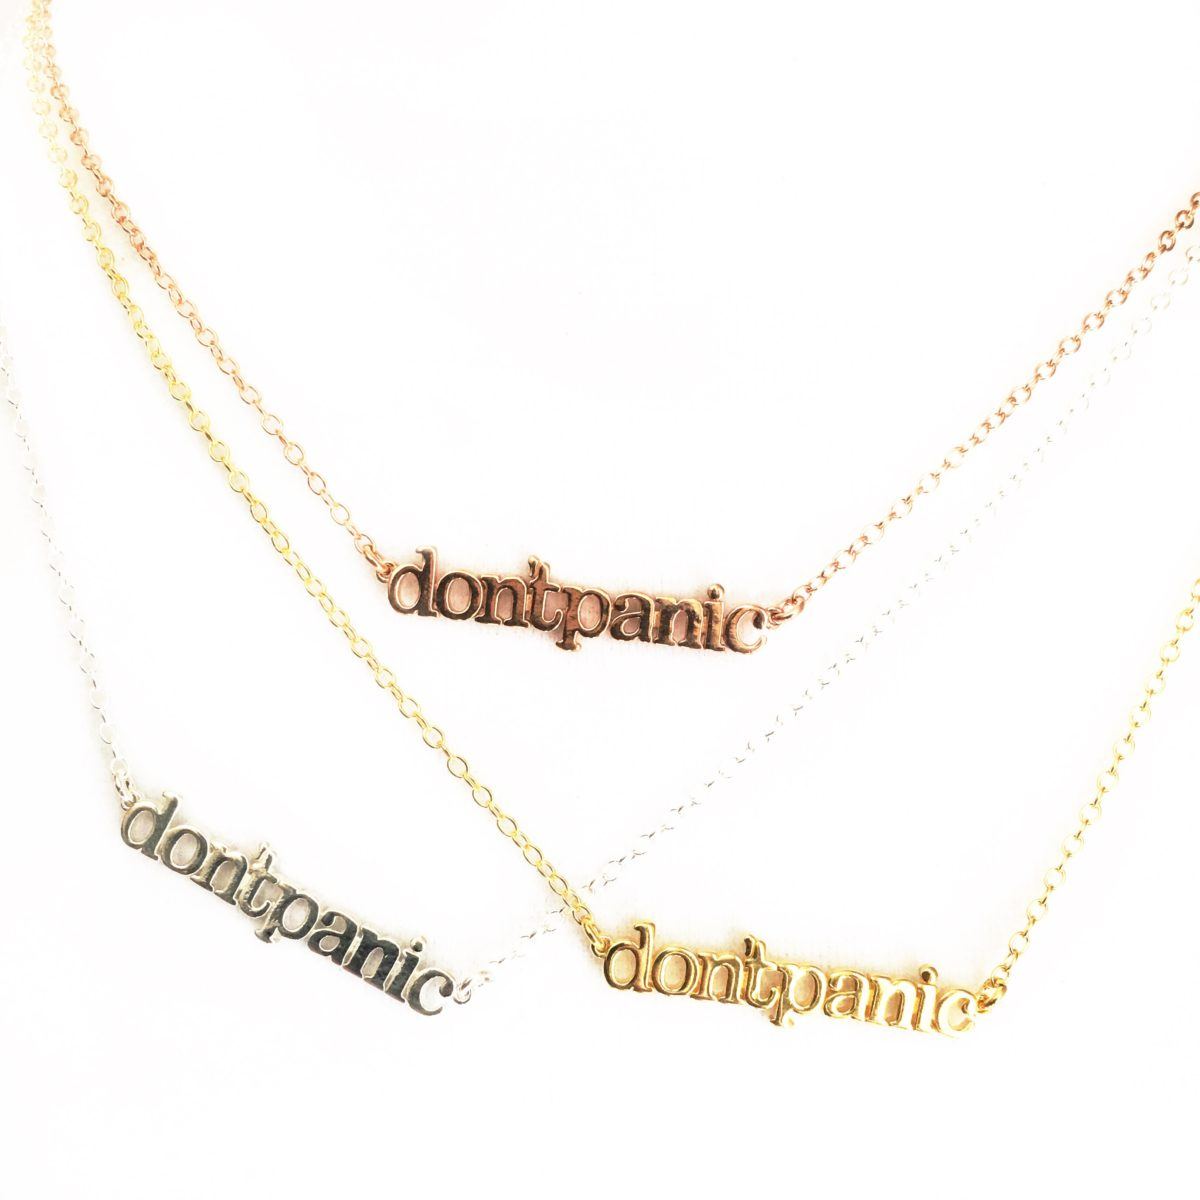 gold chain necklace, don't panic, graduation gift, hoilday reminder